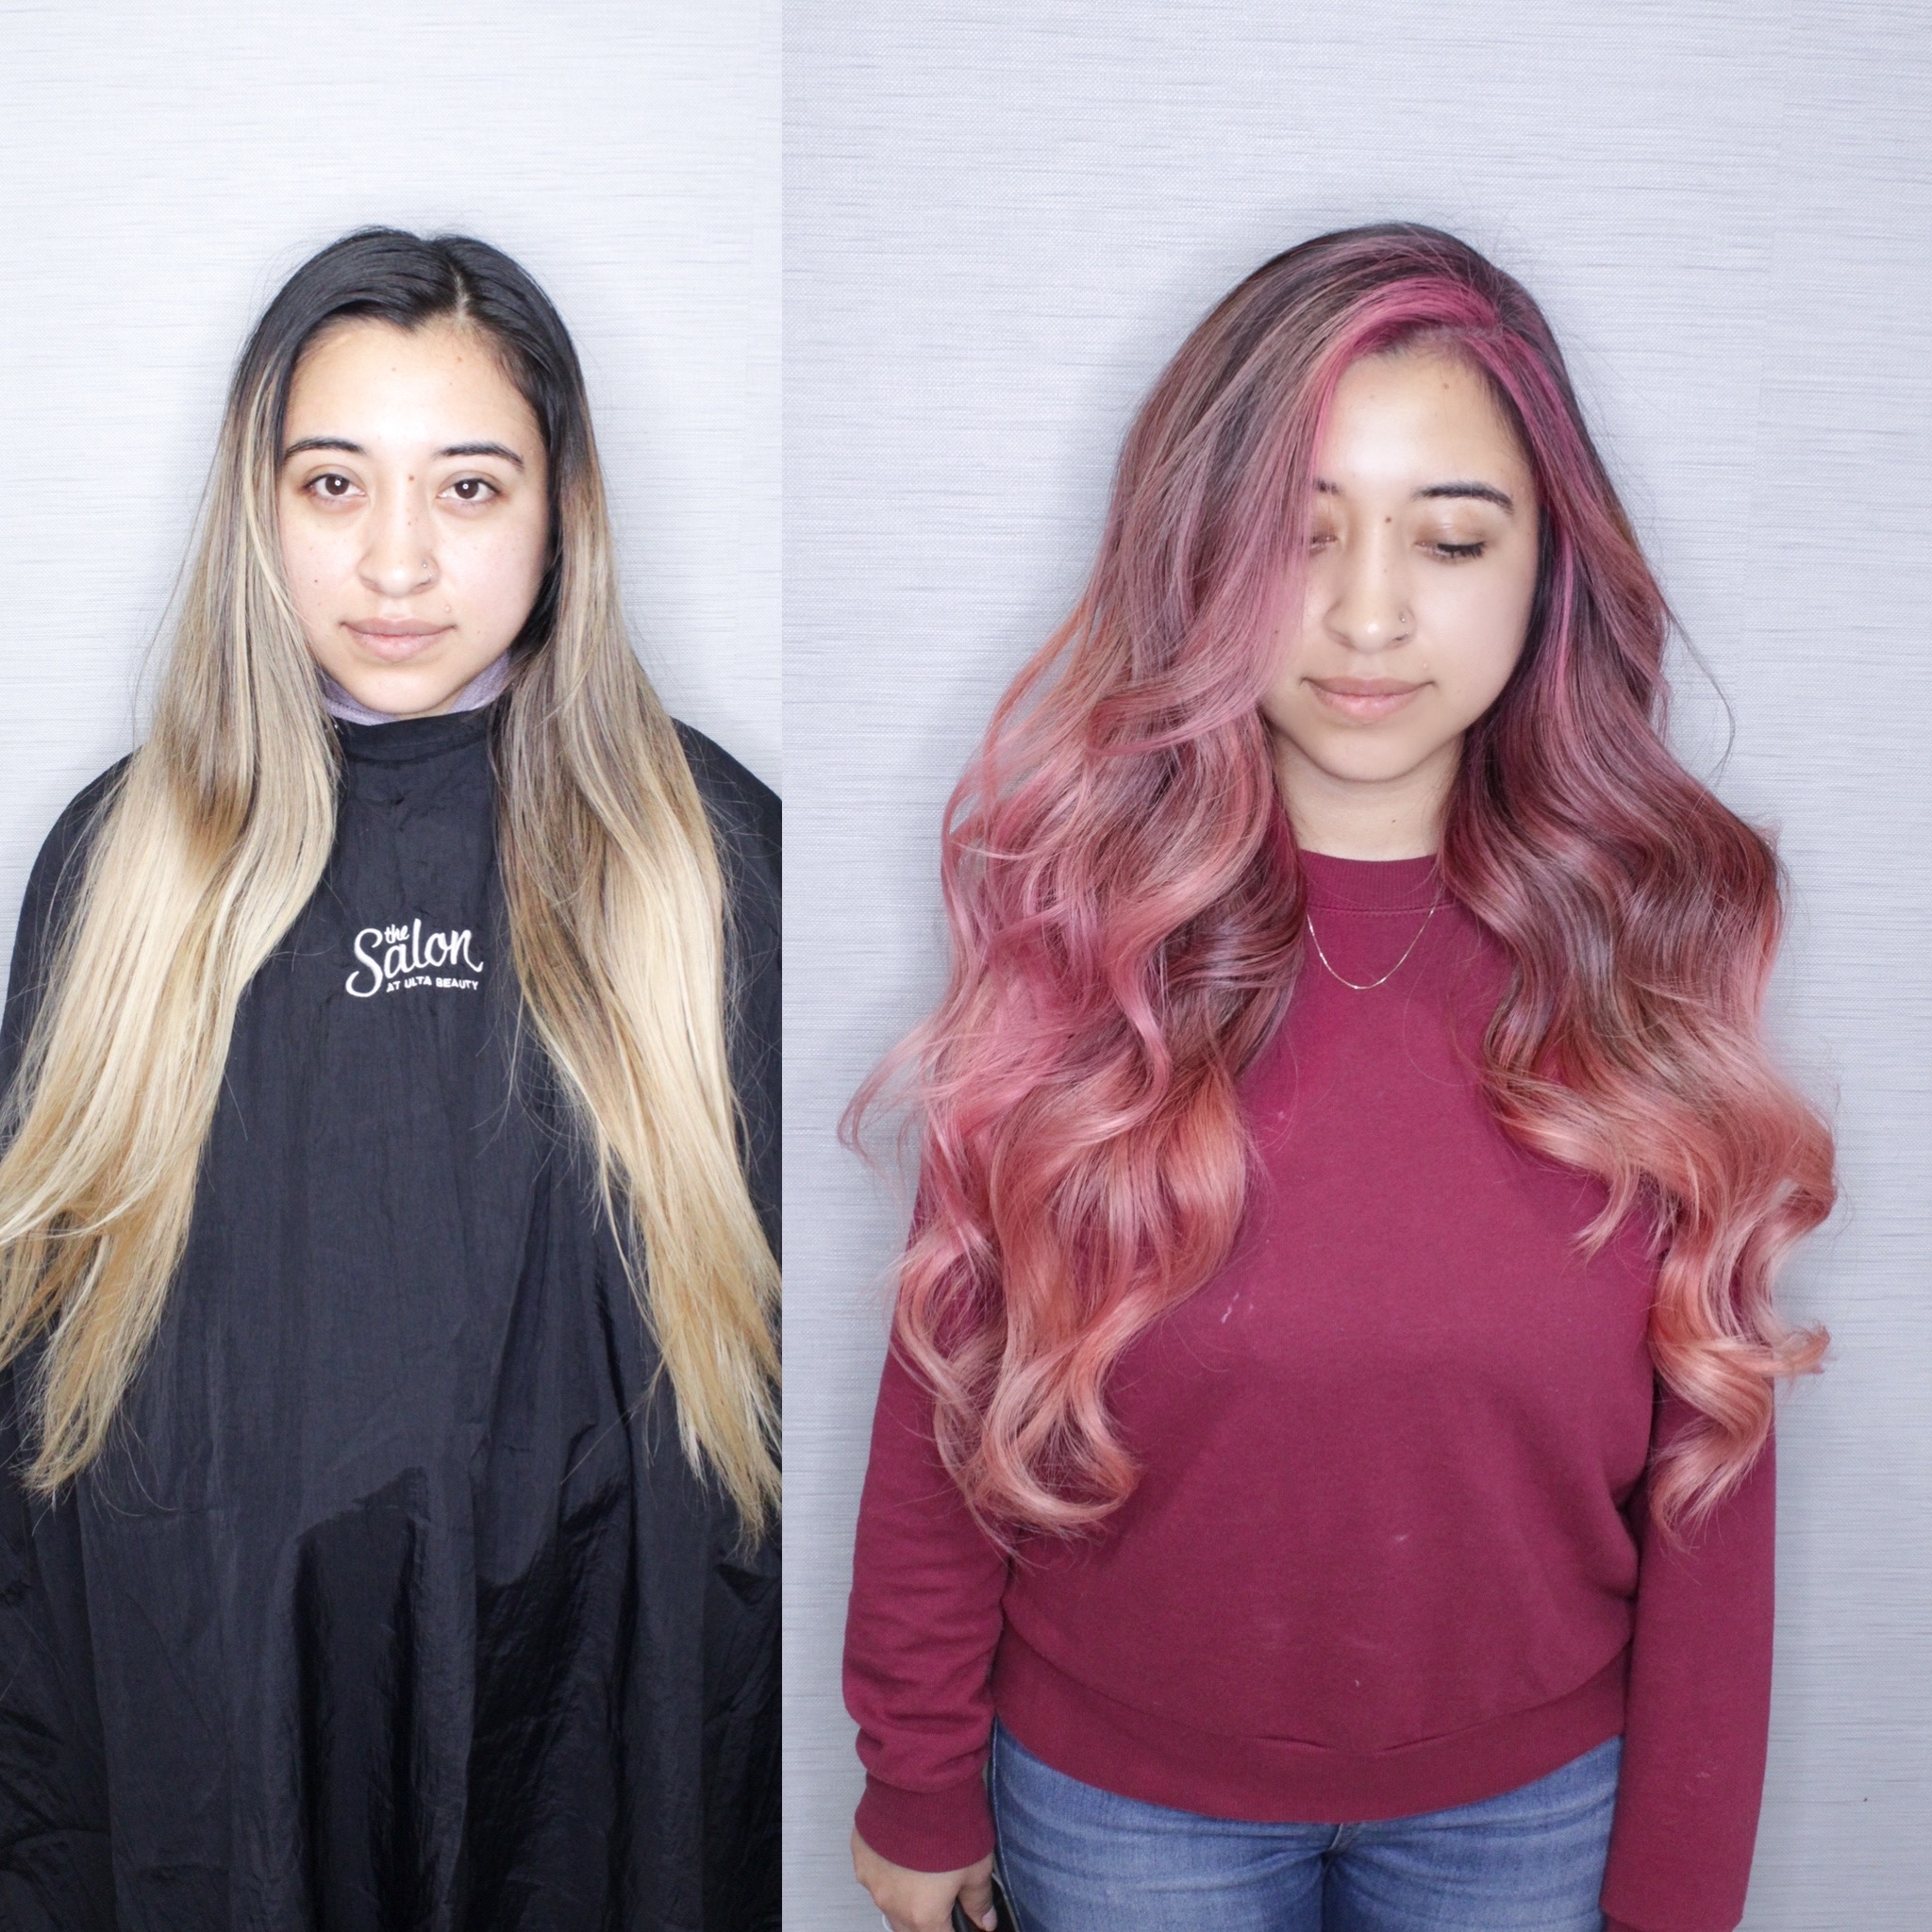 MAKEOVER: From Blonde To Pink (Consultation Is Key)